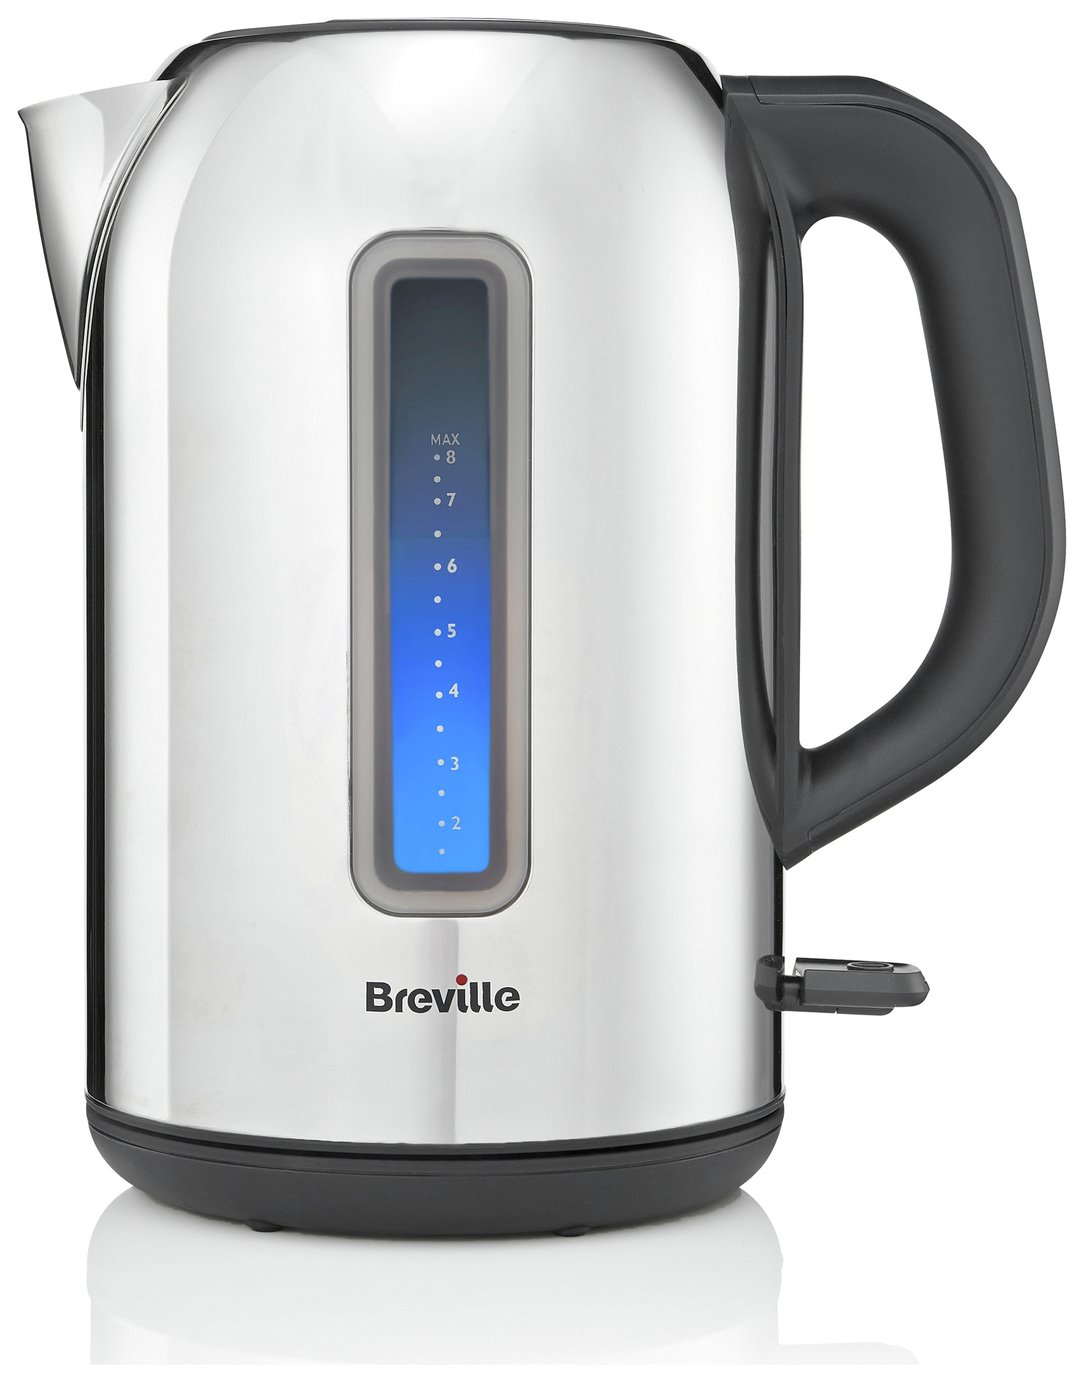 Breville Illuminated Jug Kettle - Stainless Steel